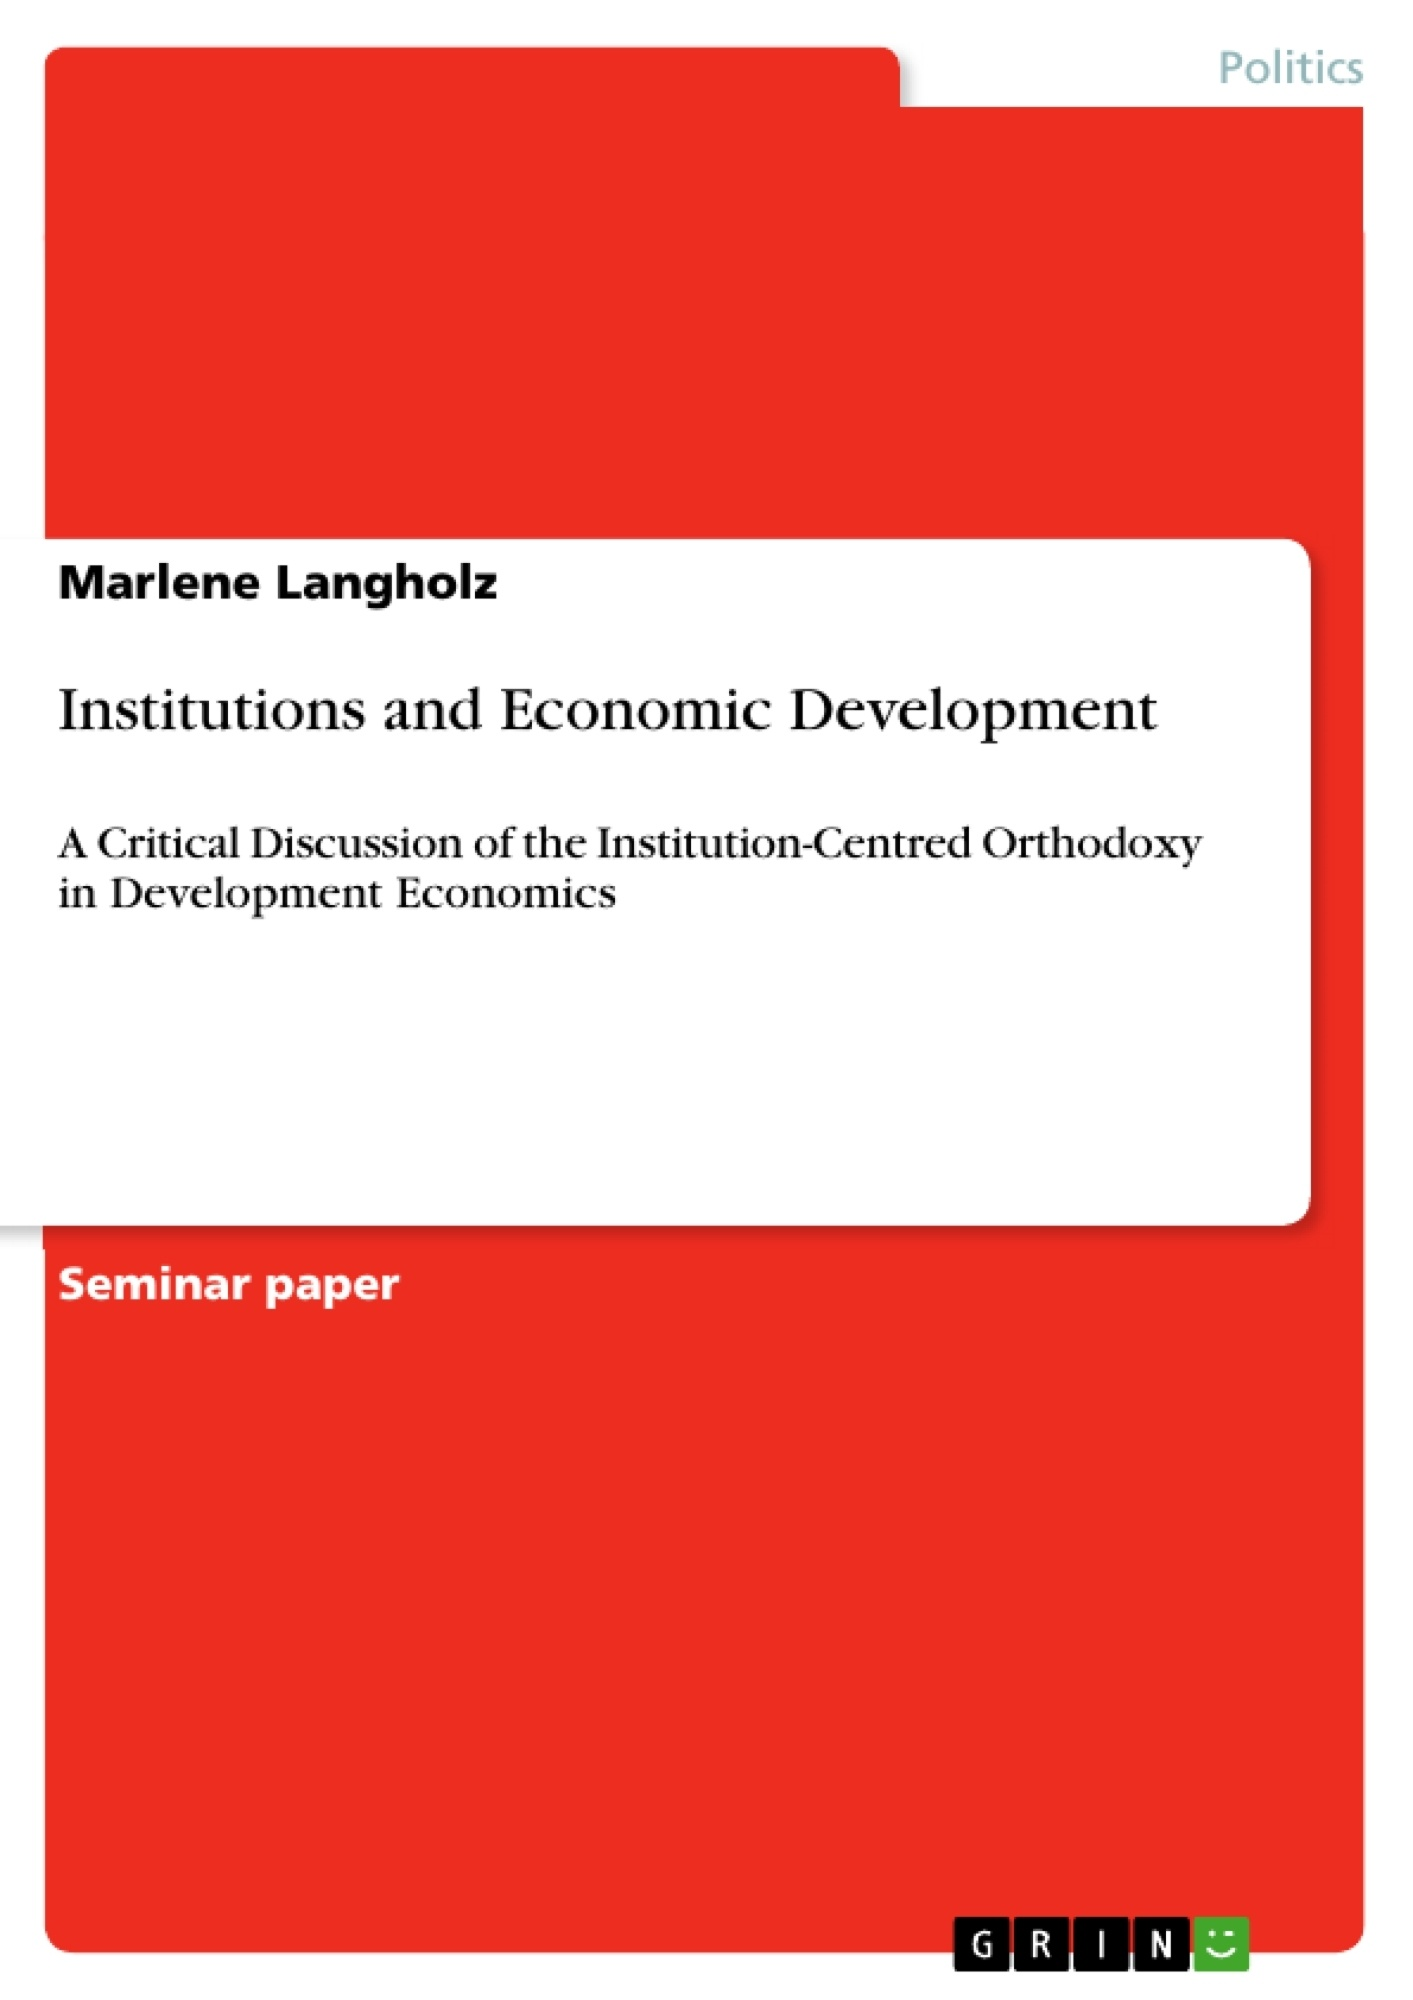 Title: Institutions and Economic Development